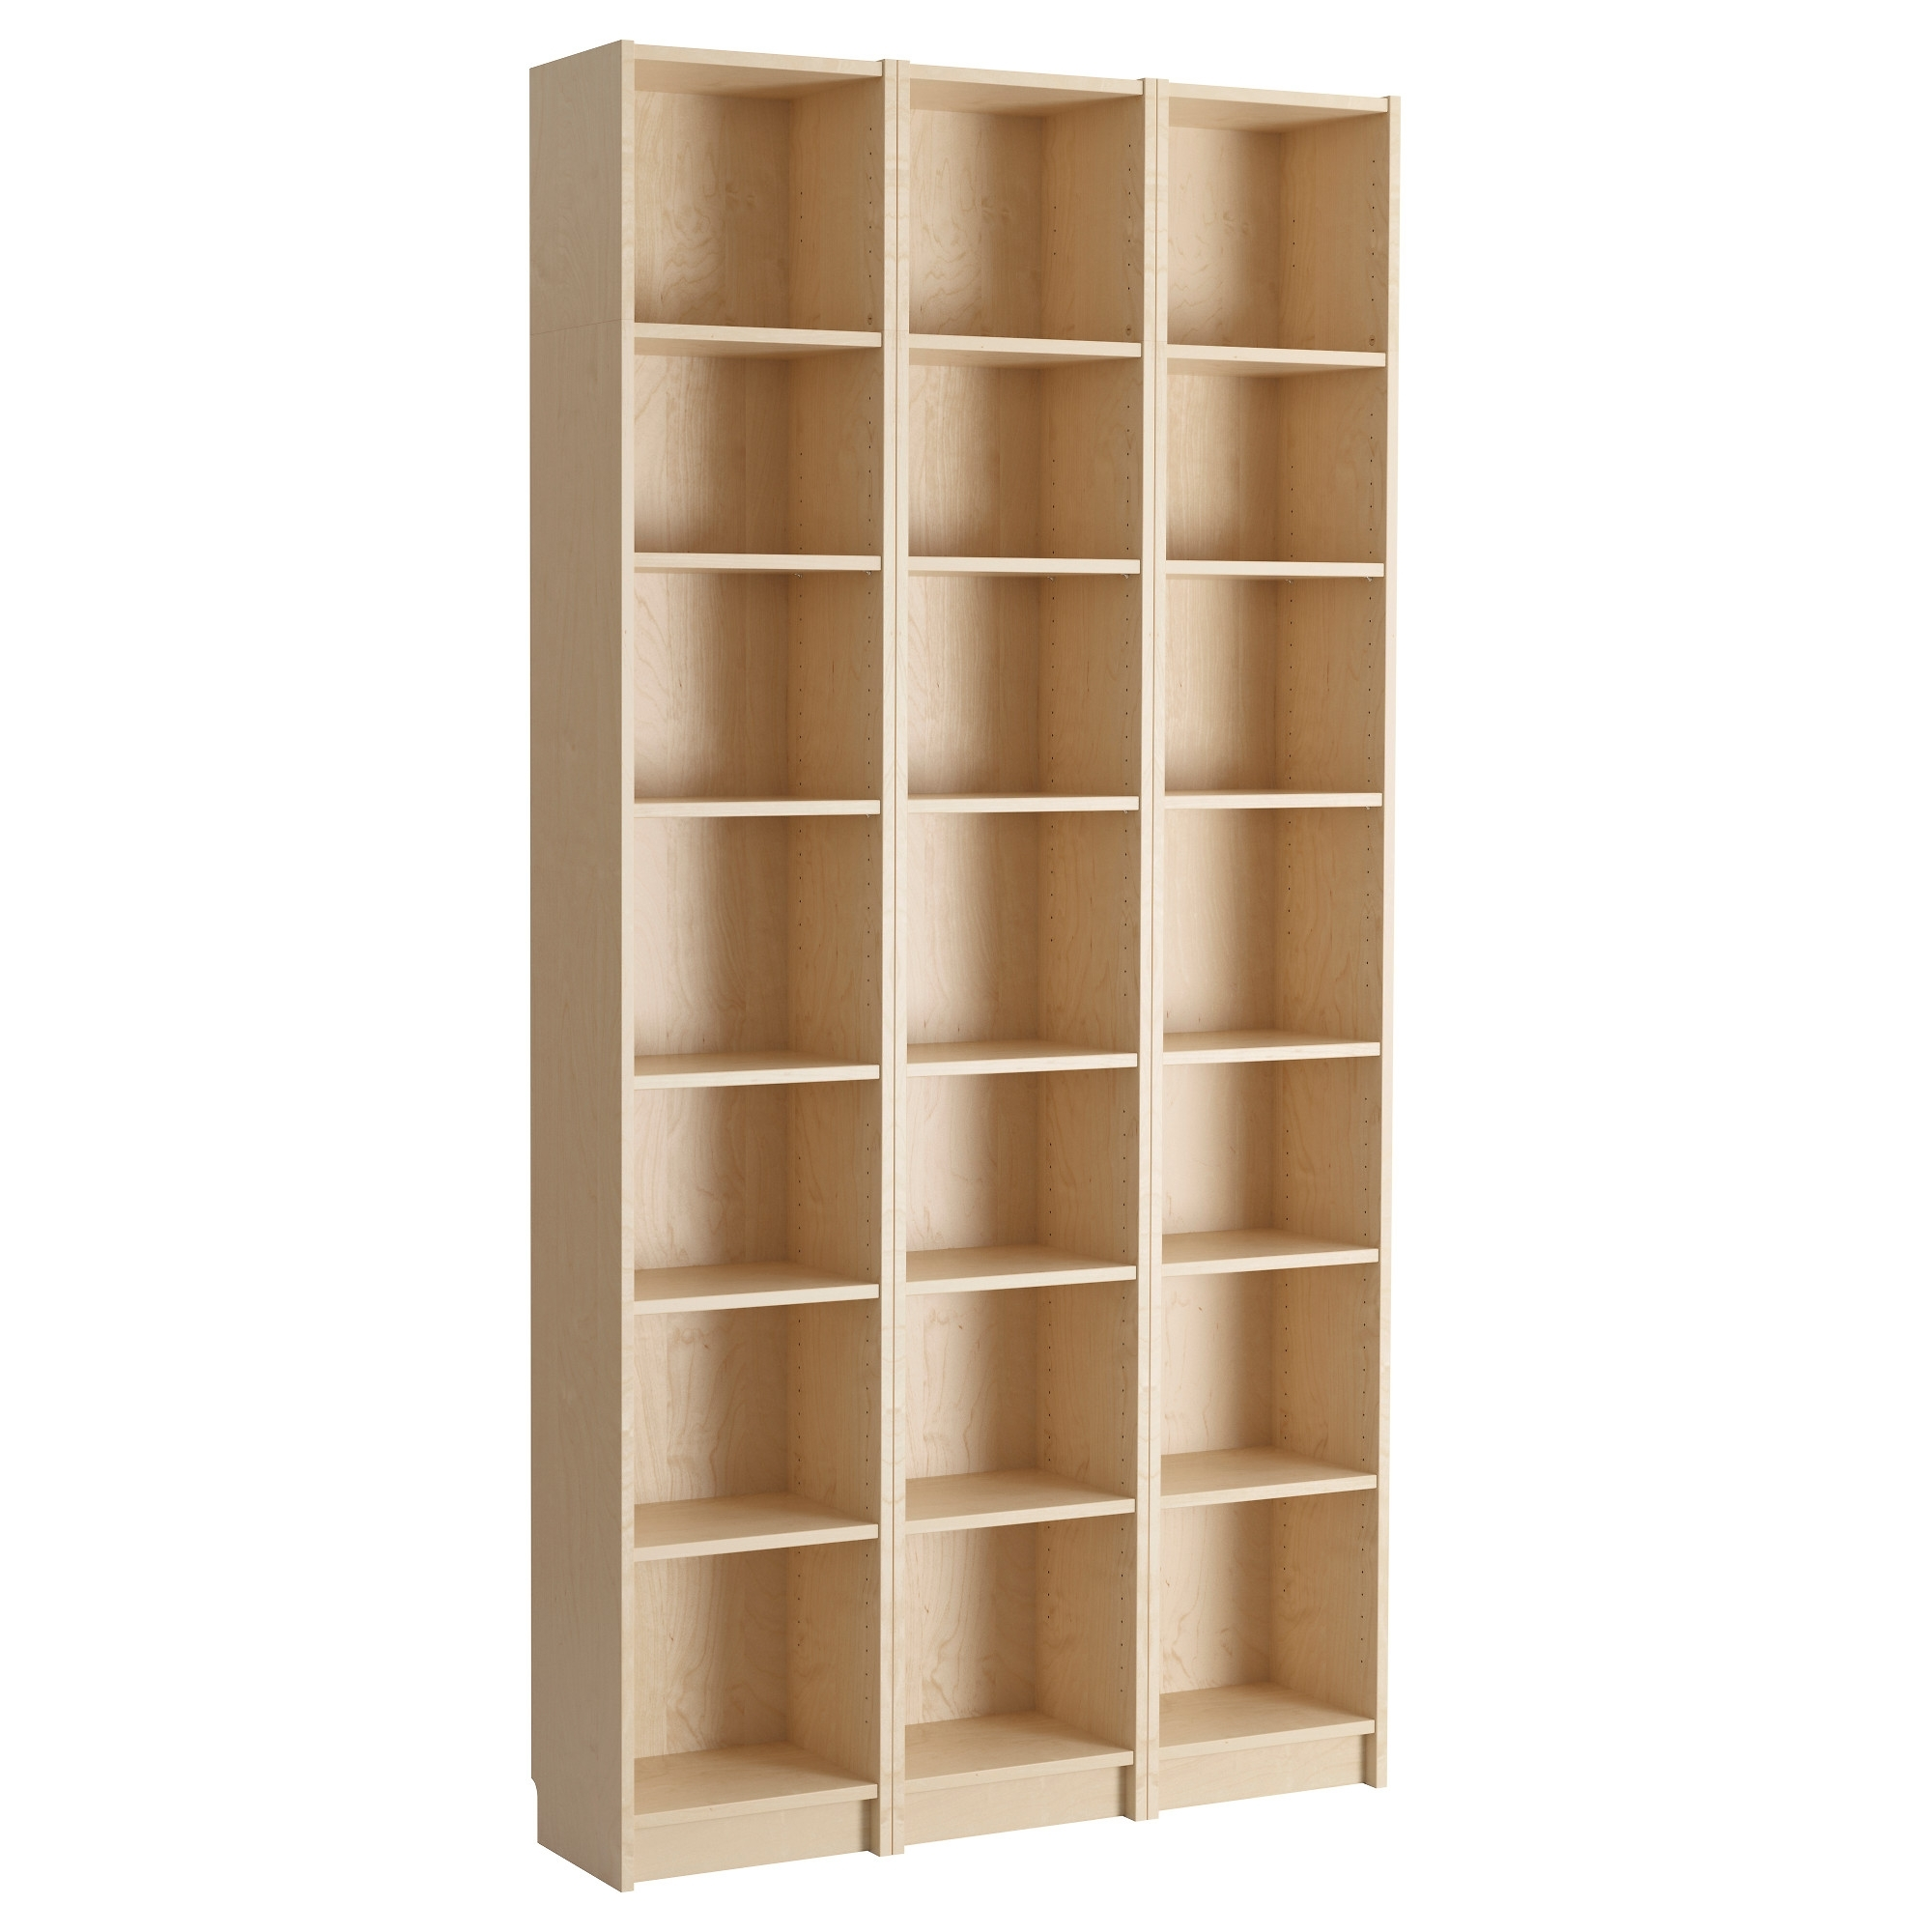 Well Known Ikea Billy Bookcases Pertaining To Billy Bookcase – Birch Veneer – Ikea (View 8 of 15)